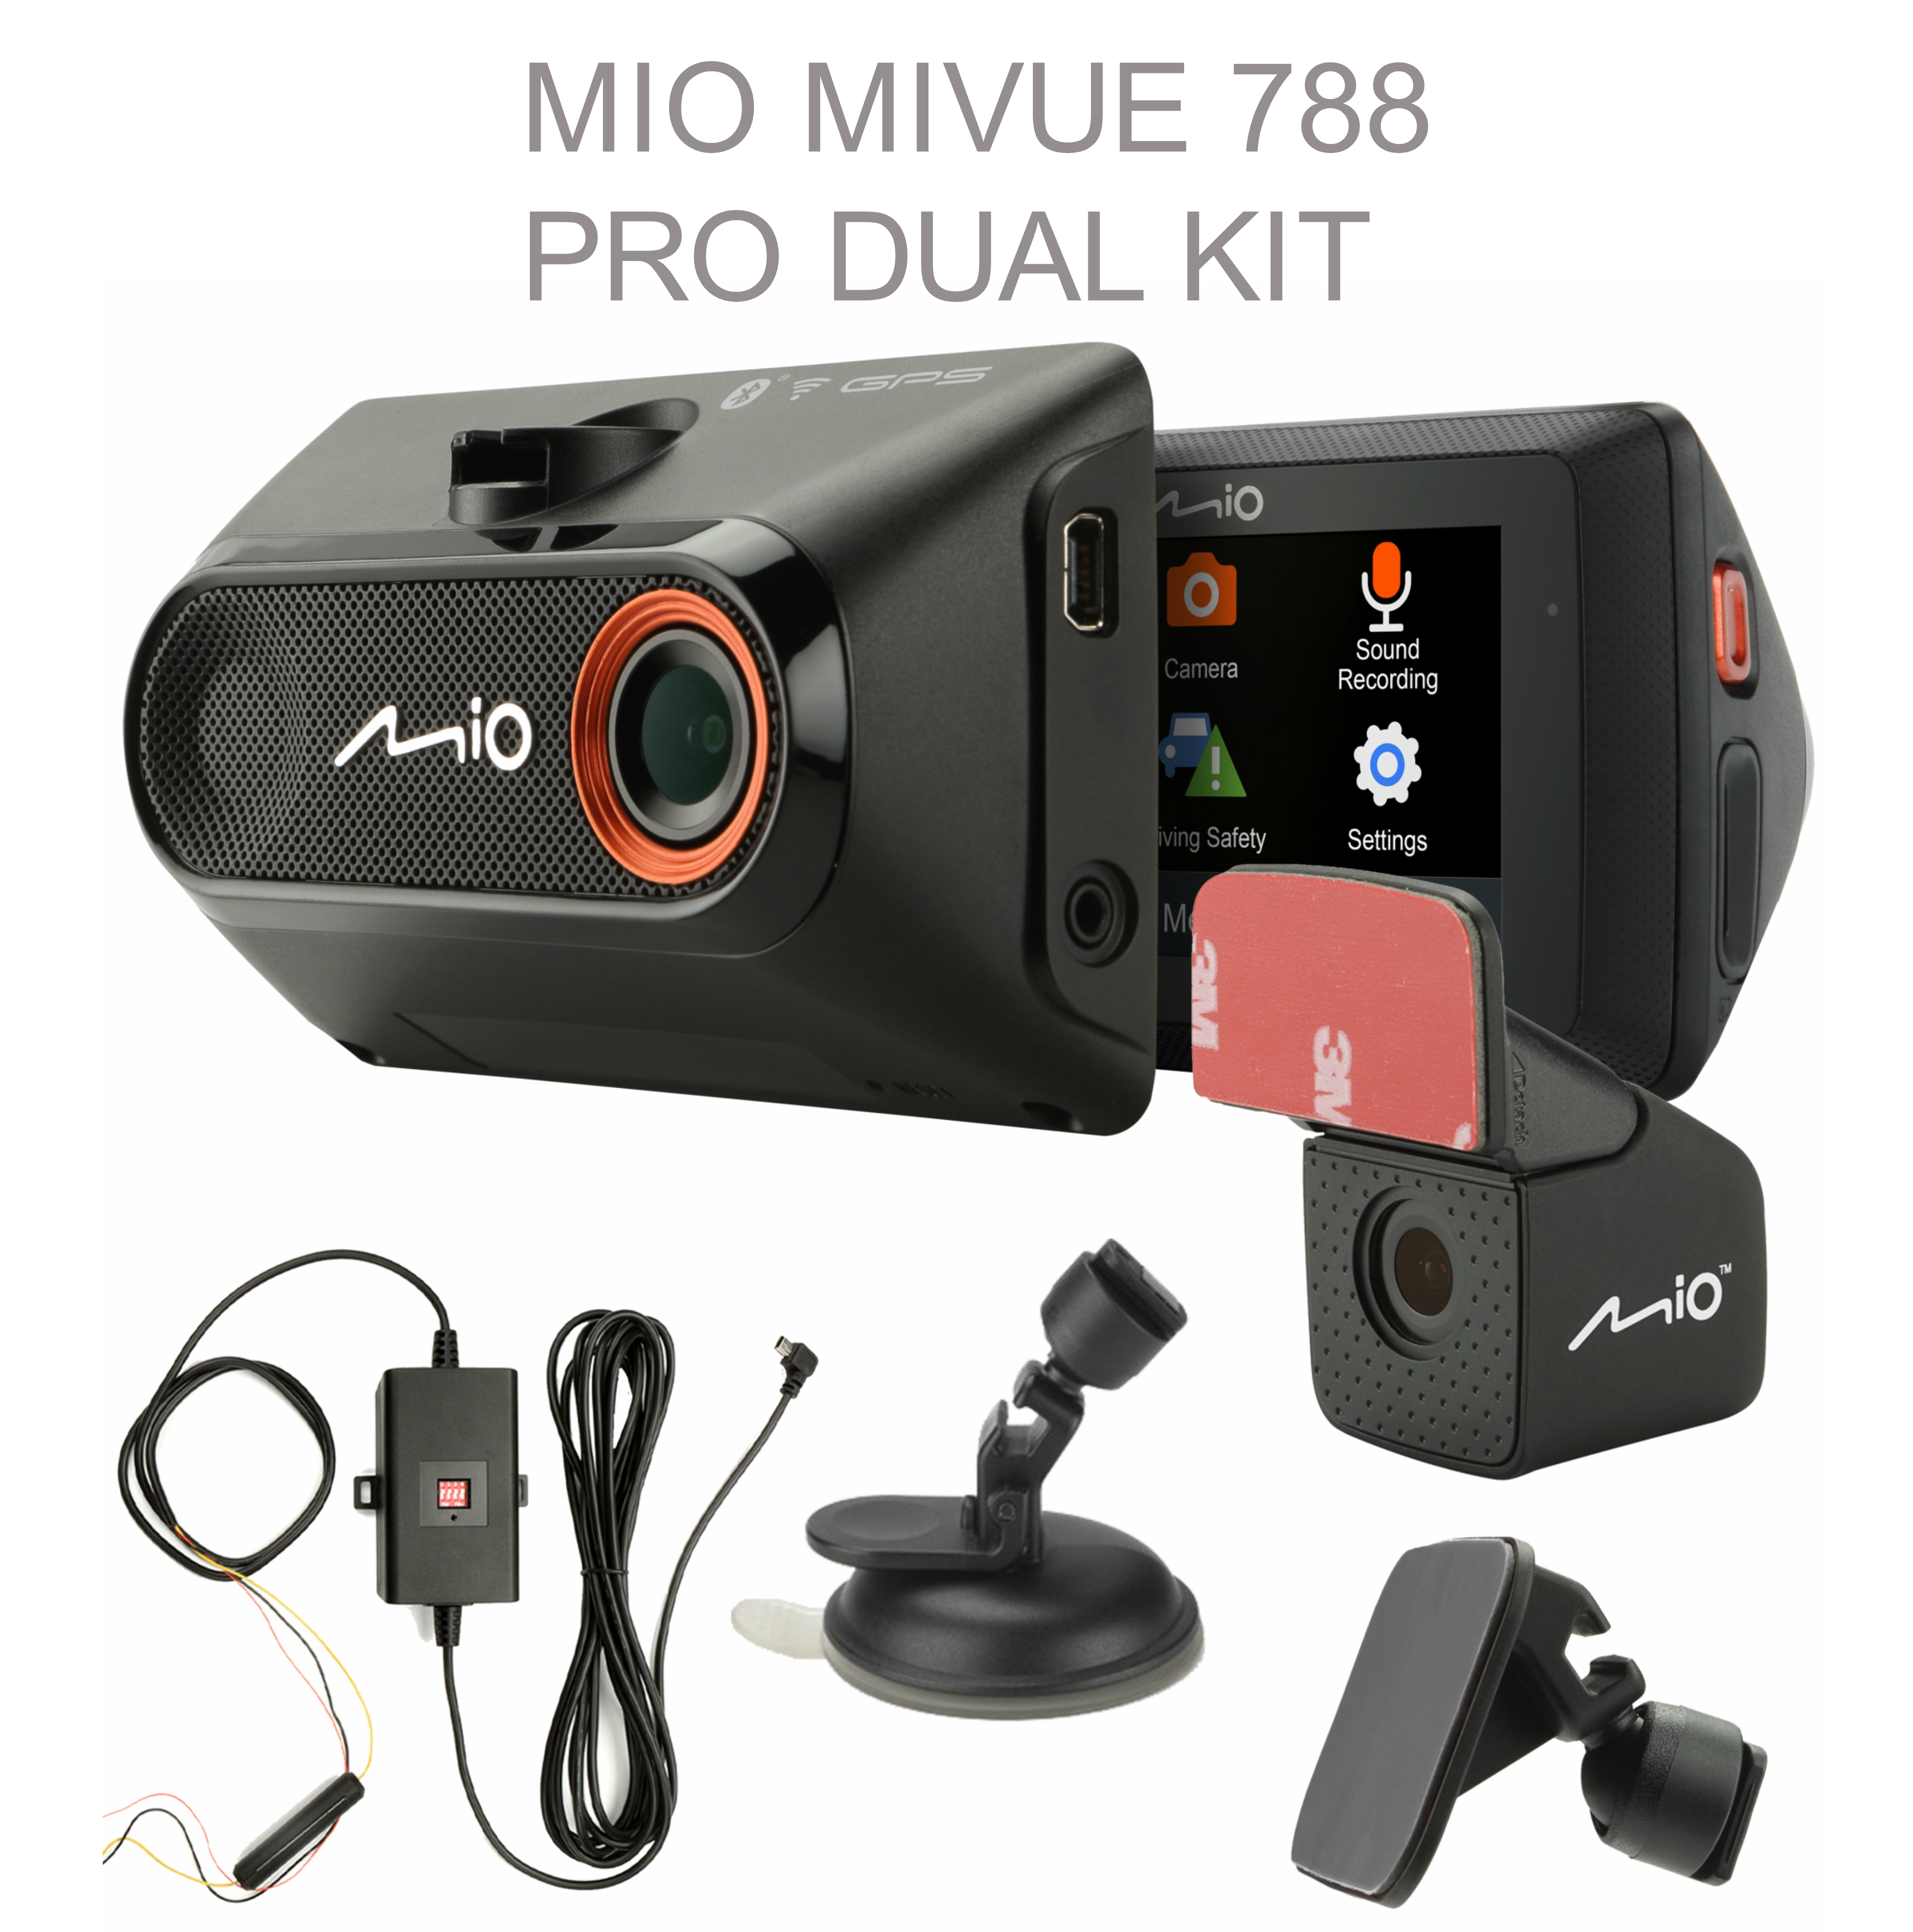 mio mivue 788 pro wifi front rear car dash cam kit 2 7 1080p hd recording new sustuu. Black Bedroom Furniture Sets. Home Design Ideas